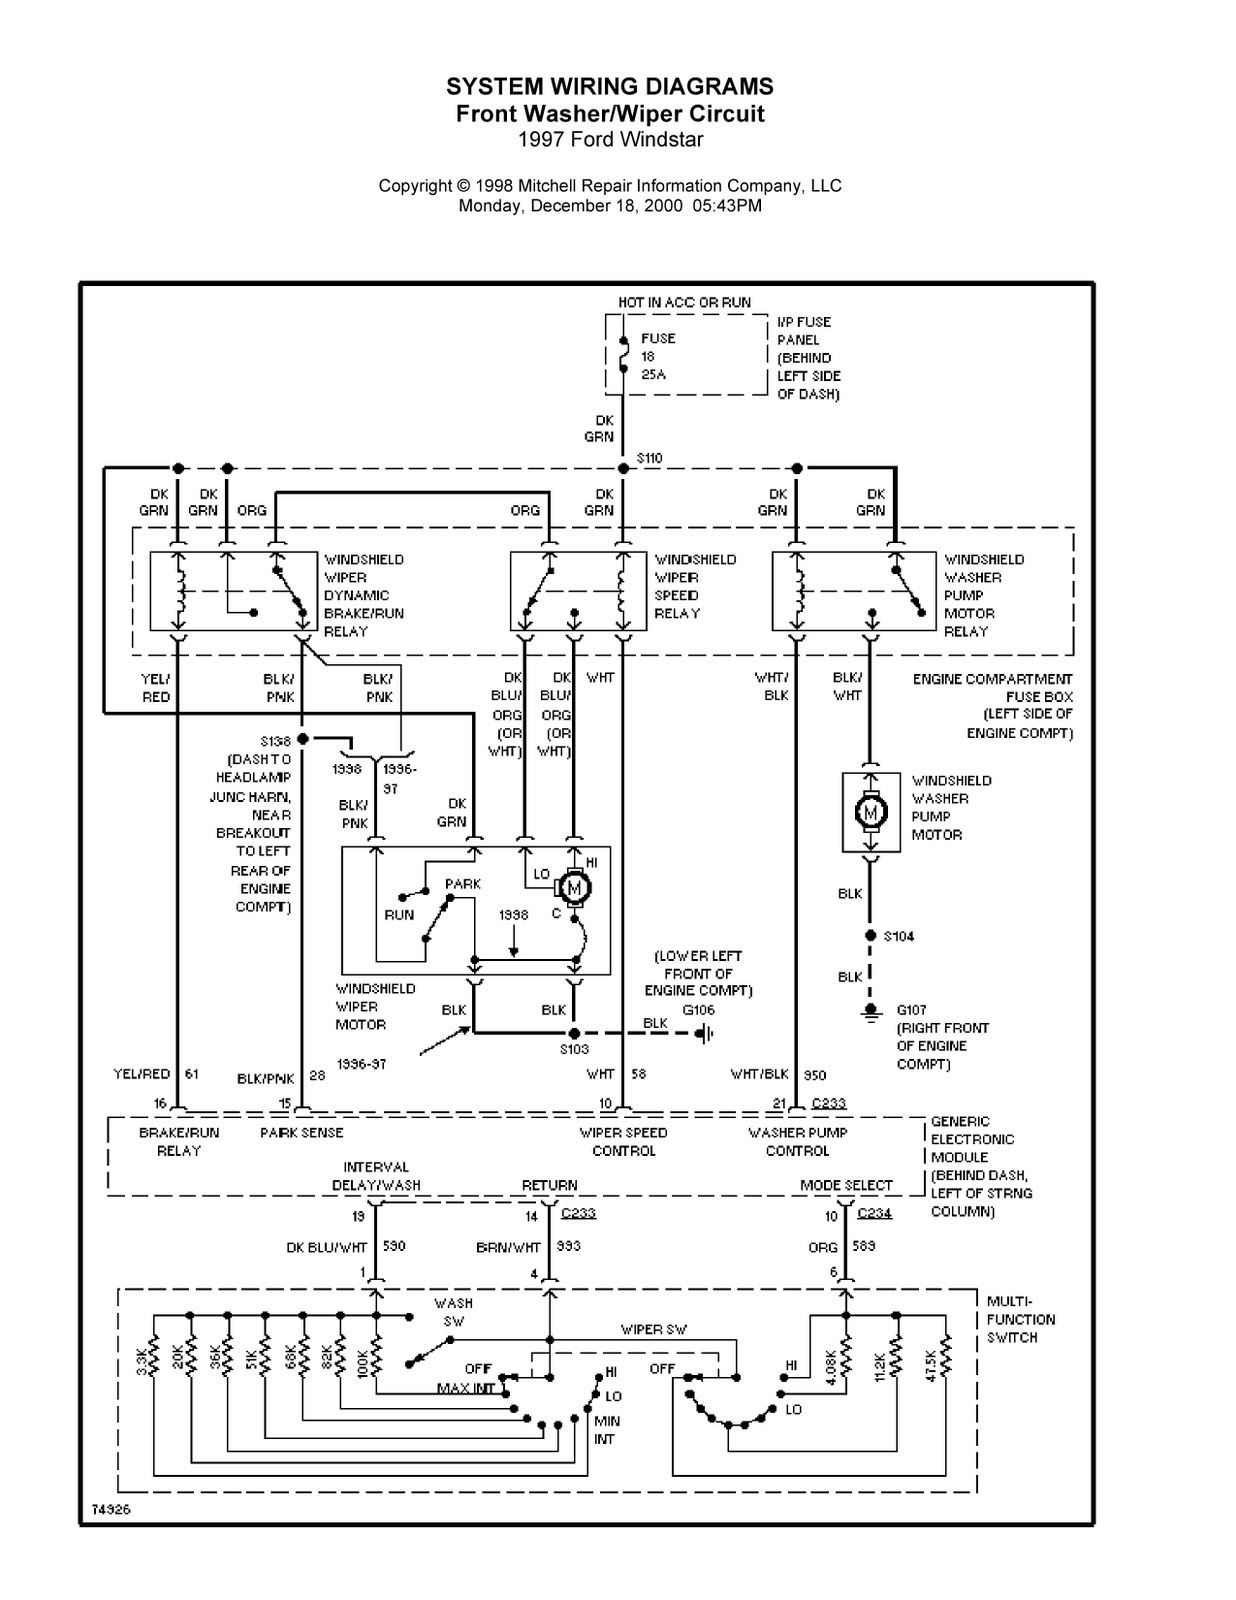 98 ford windstar wiring diagram trusted wiring diagram u2022 rh soulmatestyle co